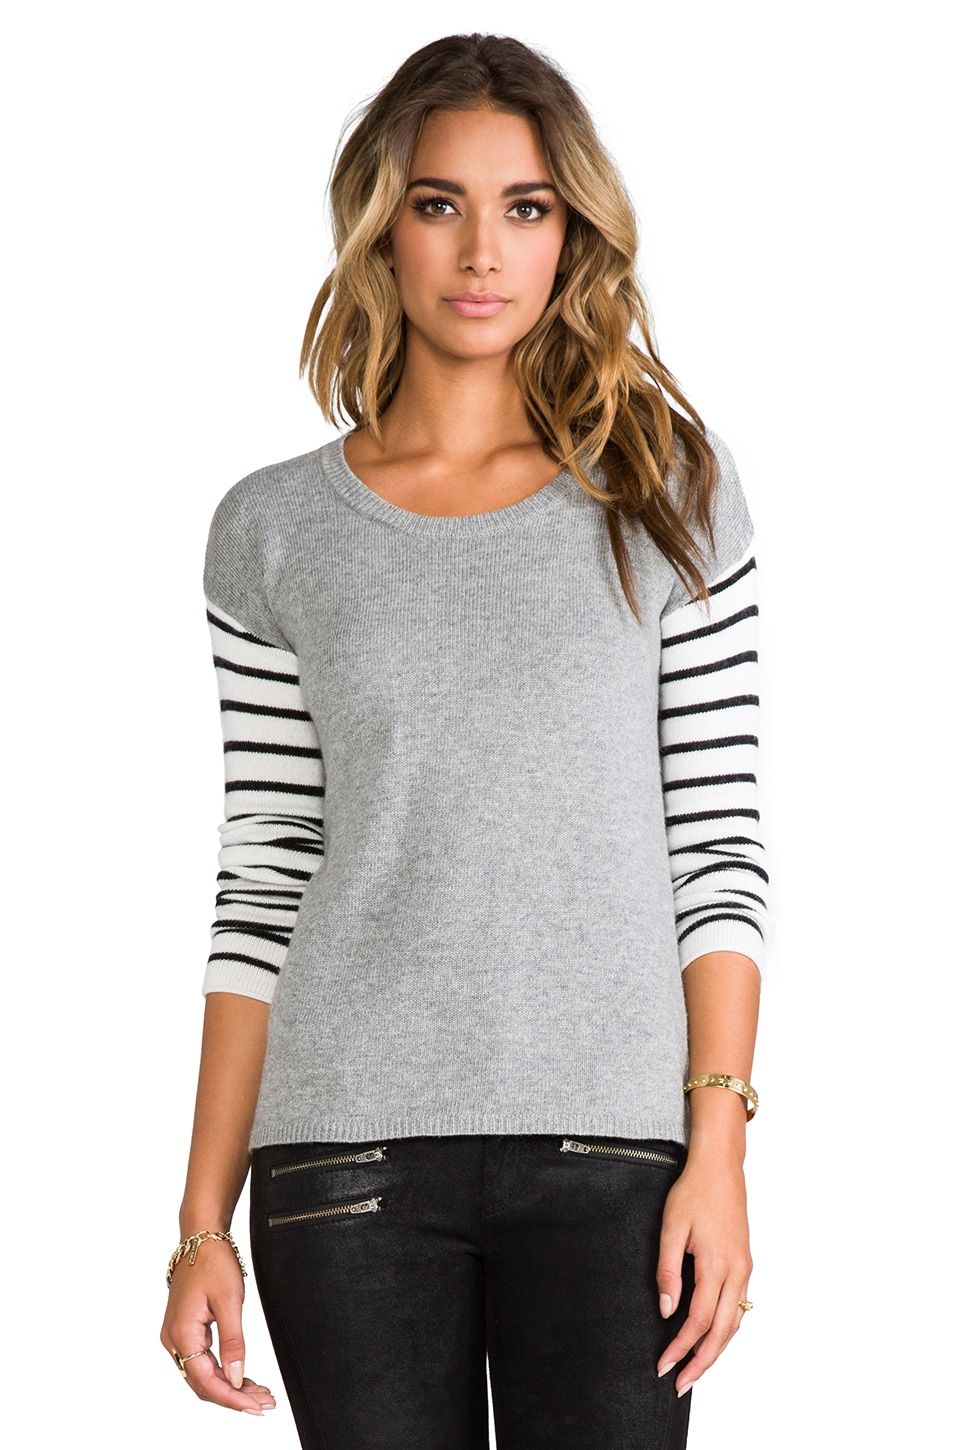 Splendid Striped Block Sweater in Grey